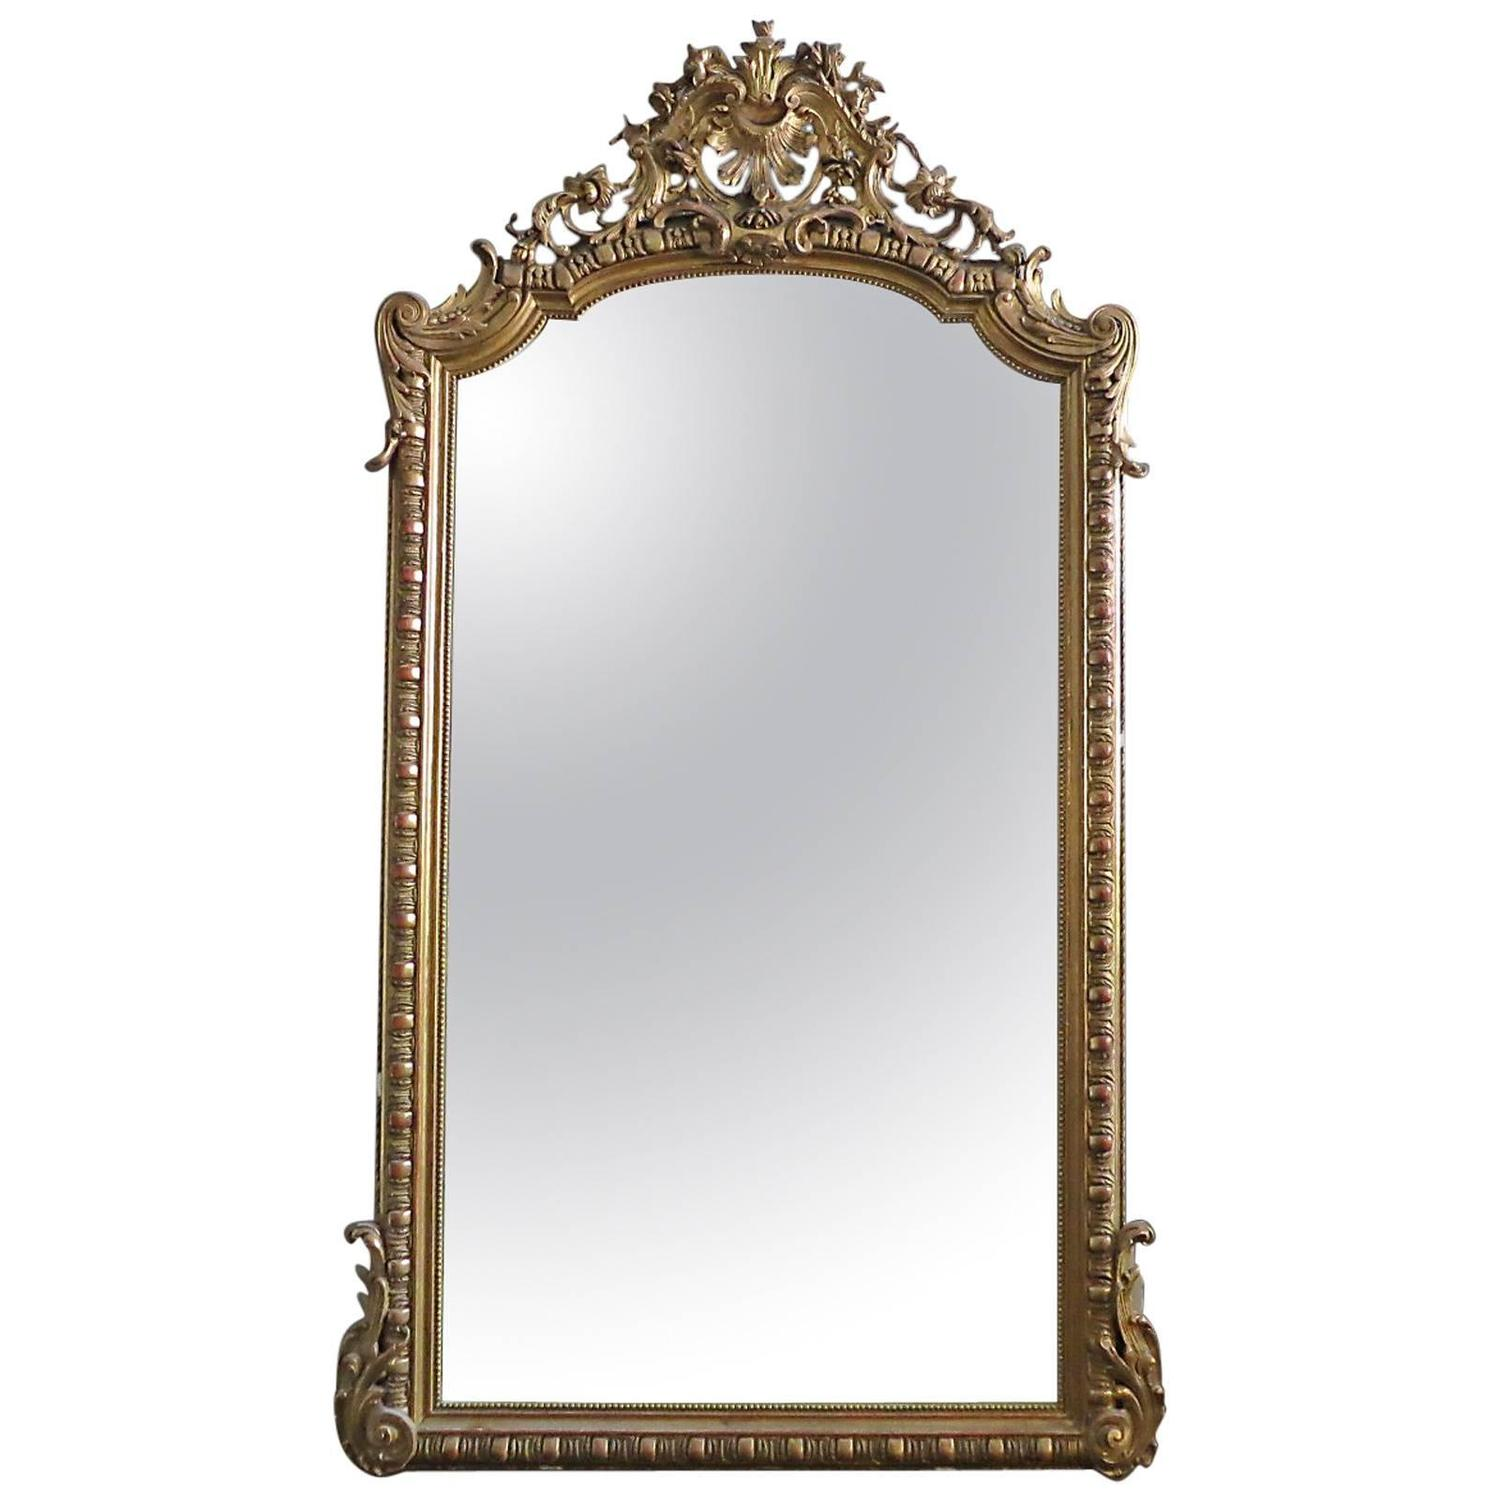 Large antique french gold gilt mirror for sale at 1stdibs for Large portrait mirror